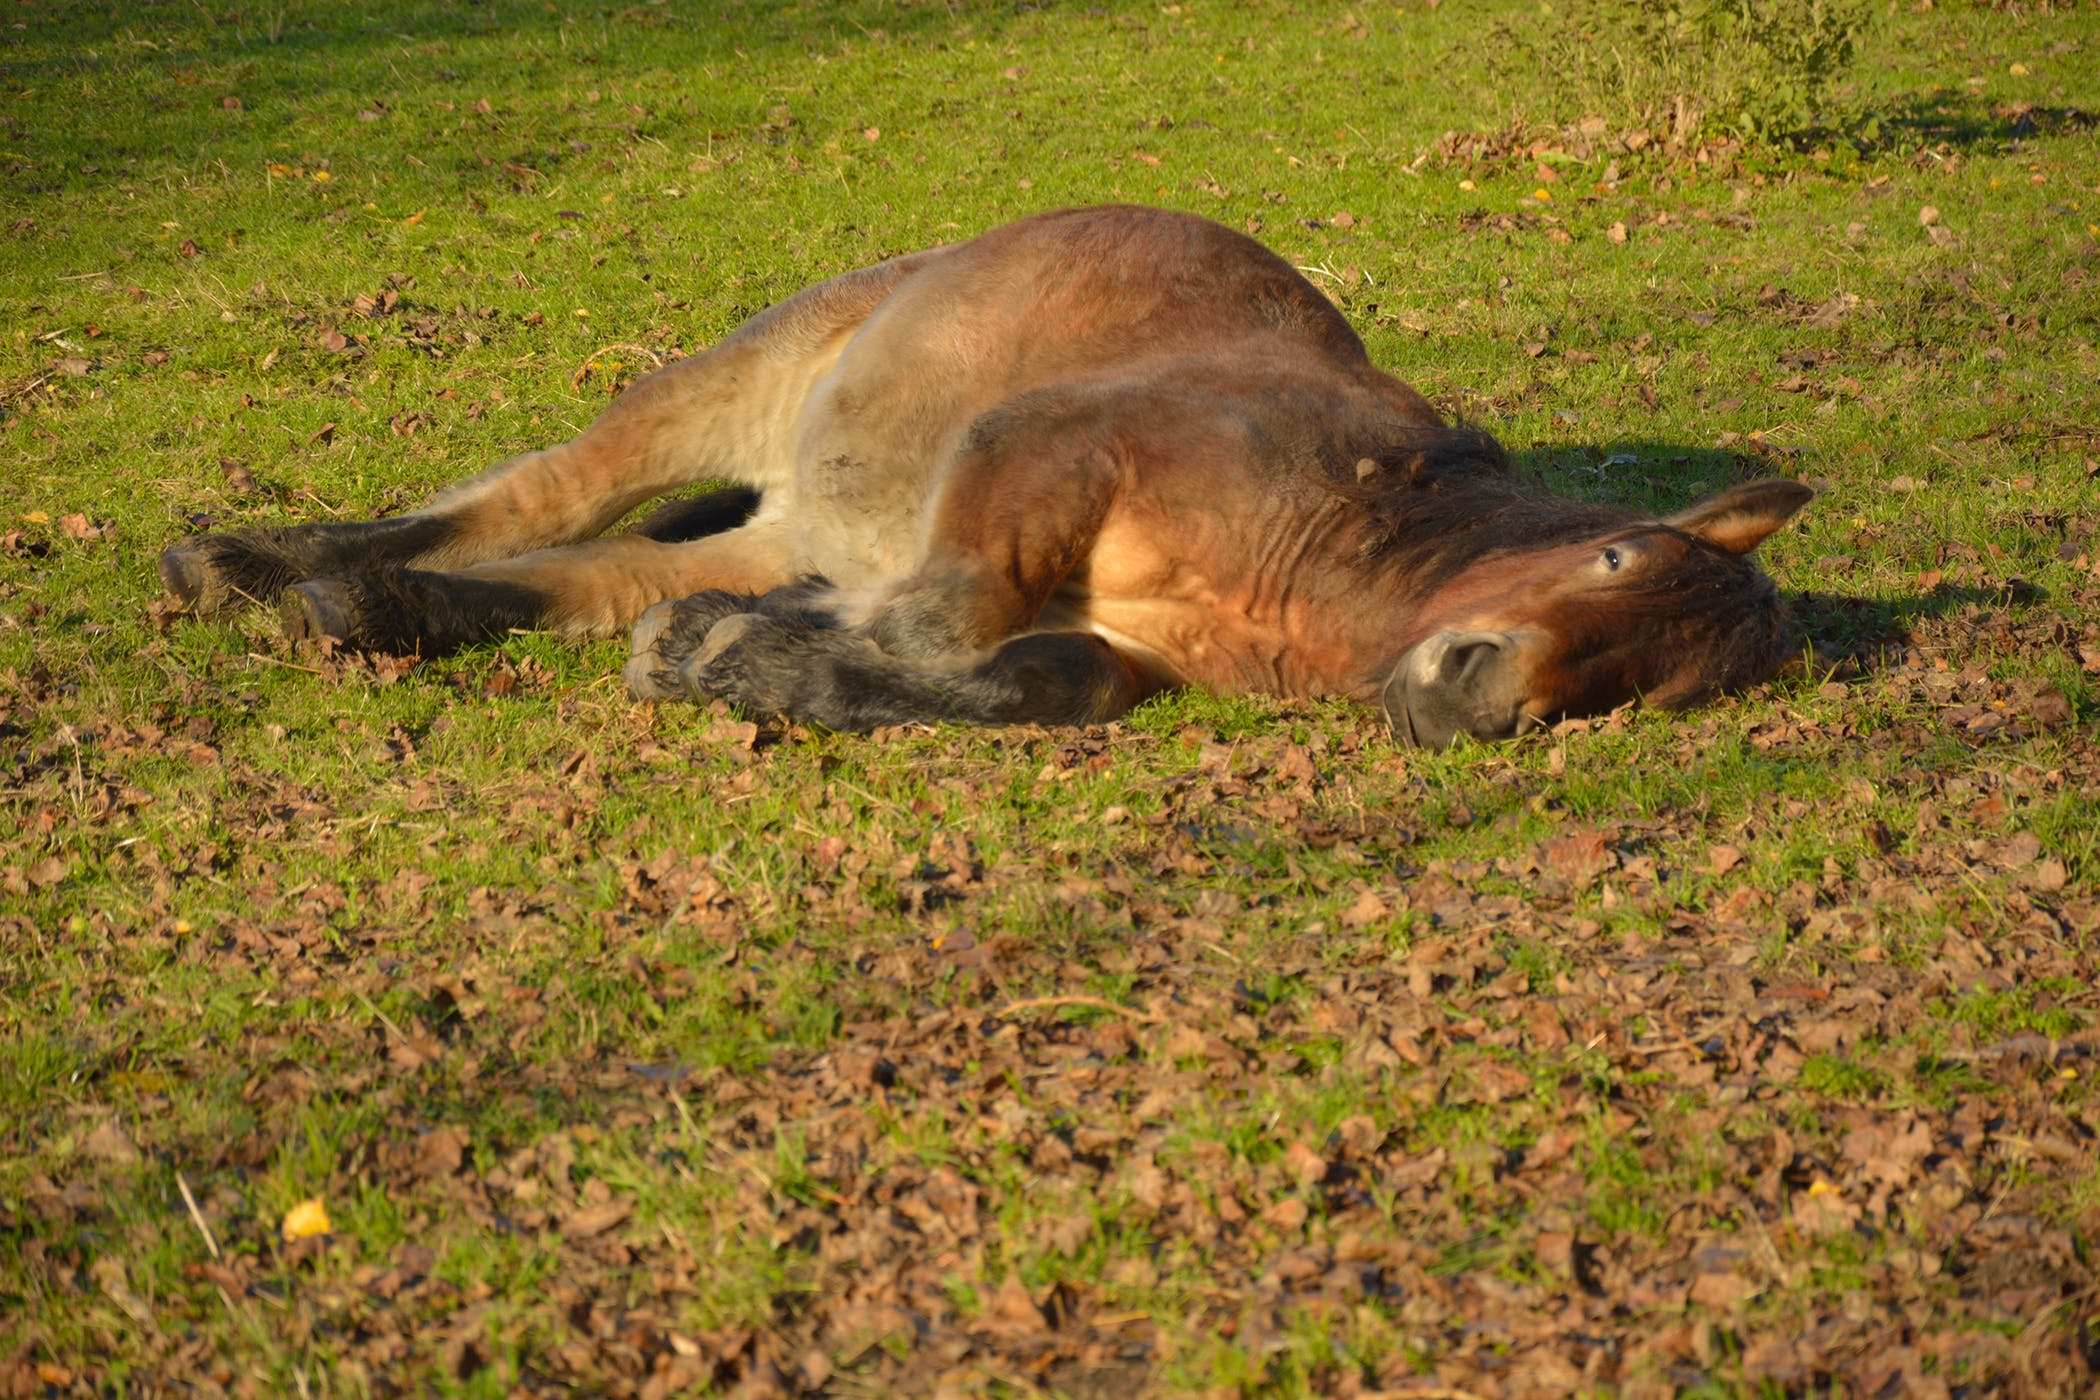 Shipping Fever in Horses - Symptoms, Causes, Diagnosis